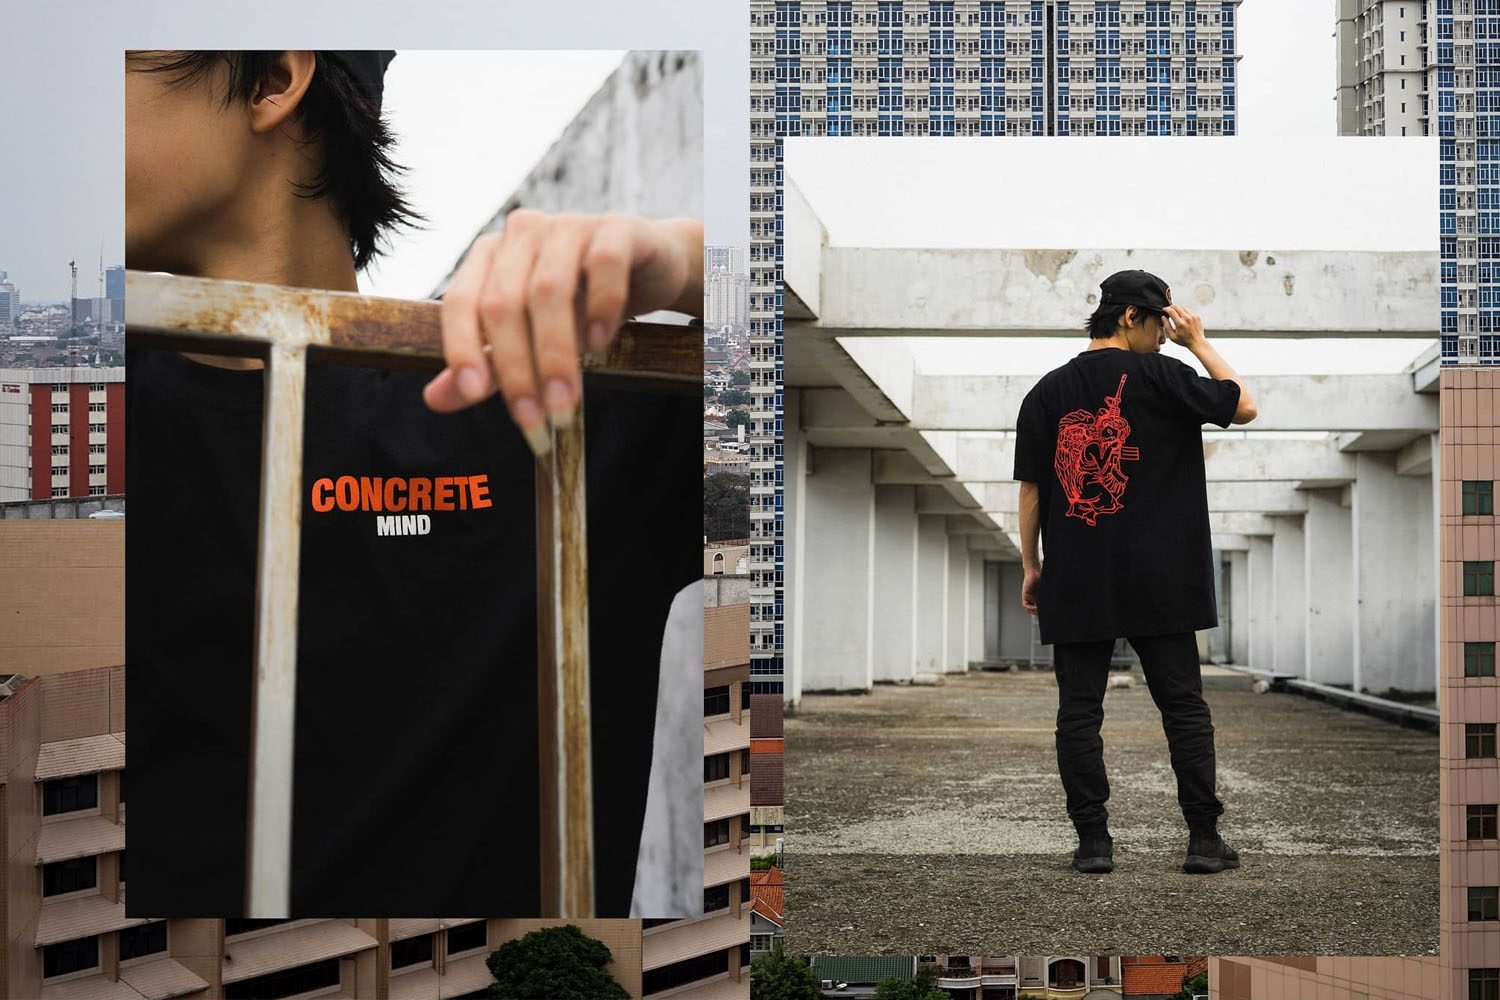 CONCRETE MIND THE PARADOXICAL MIND 1